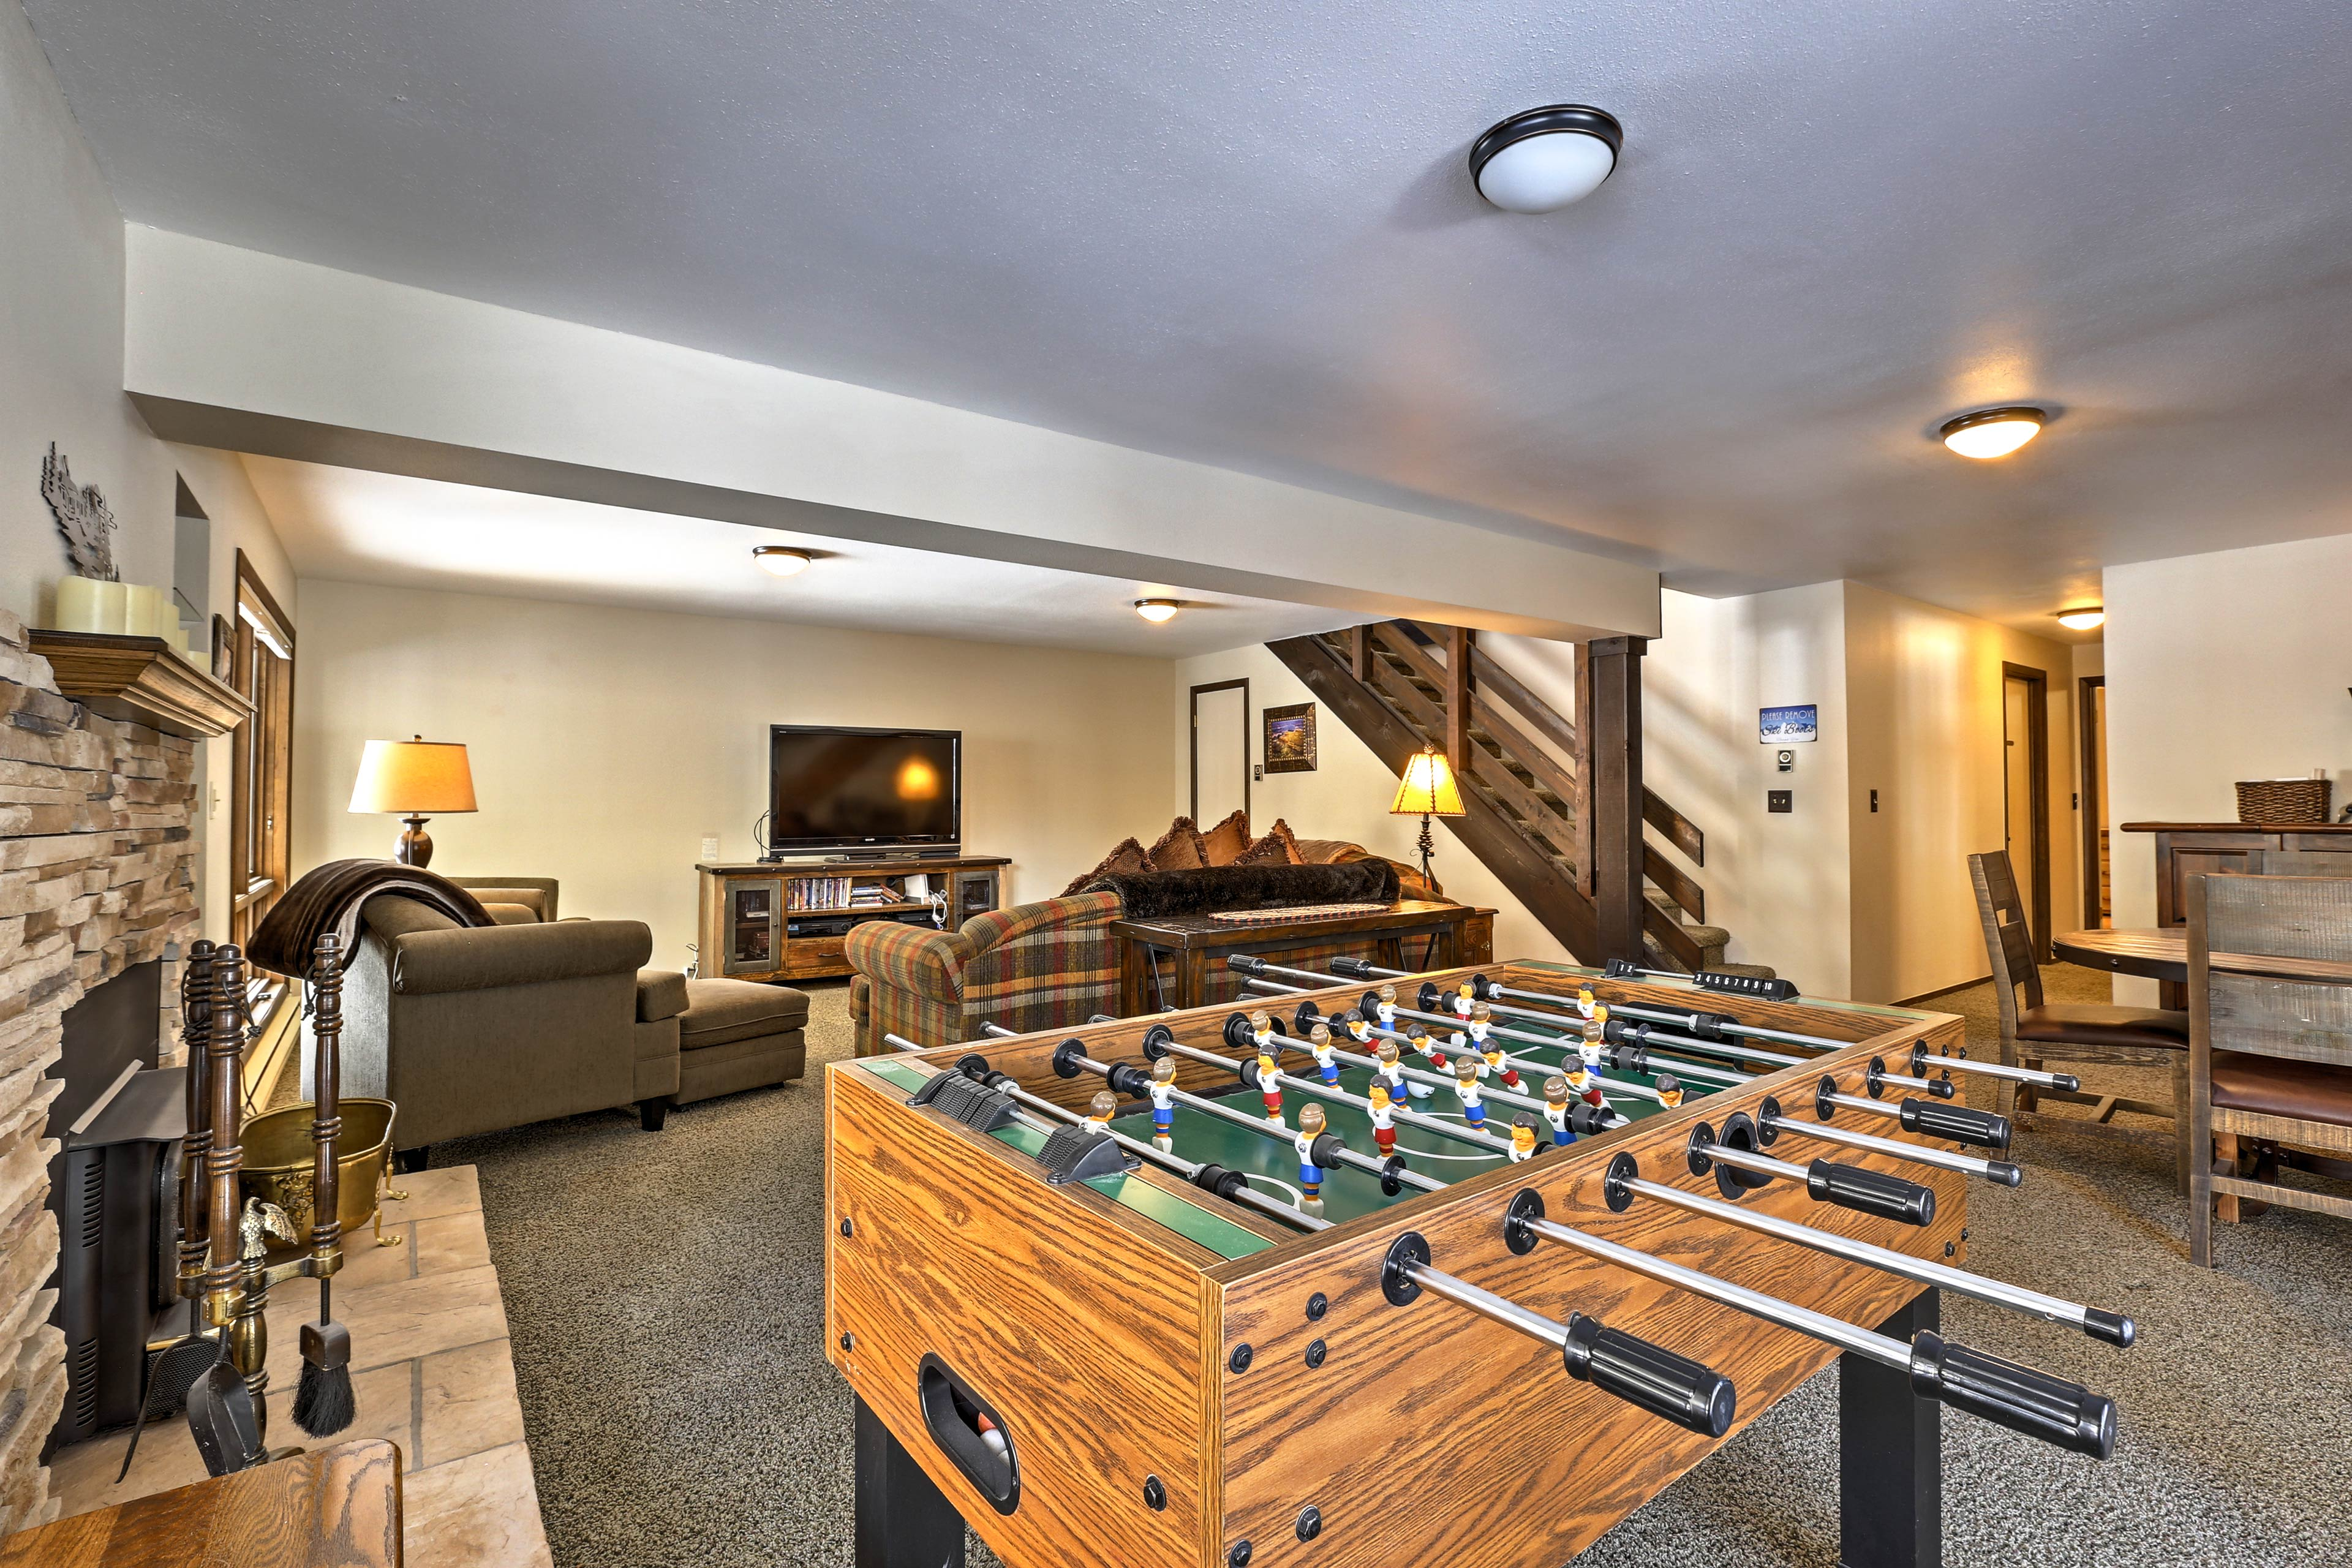 Play a game of Foosball!